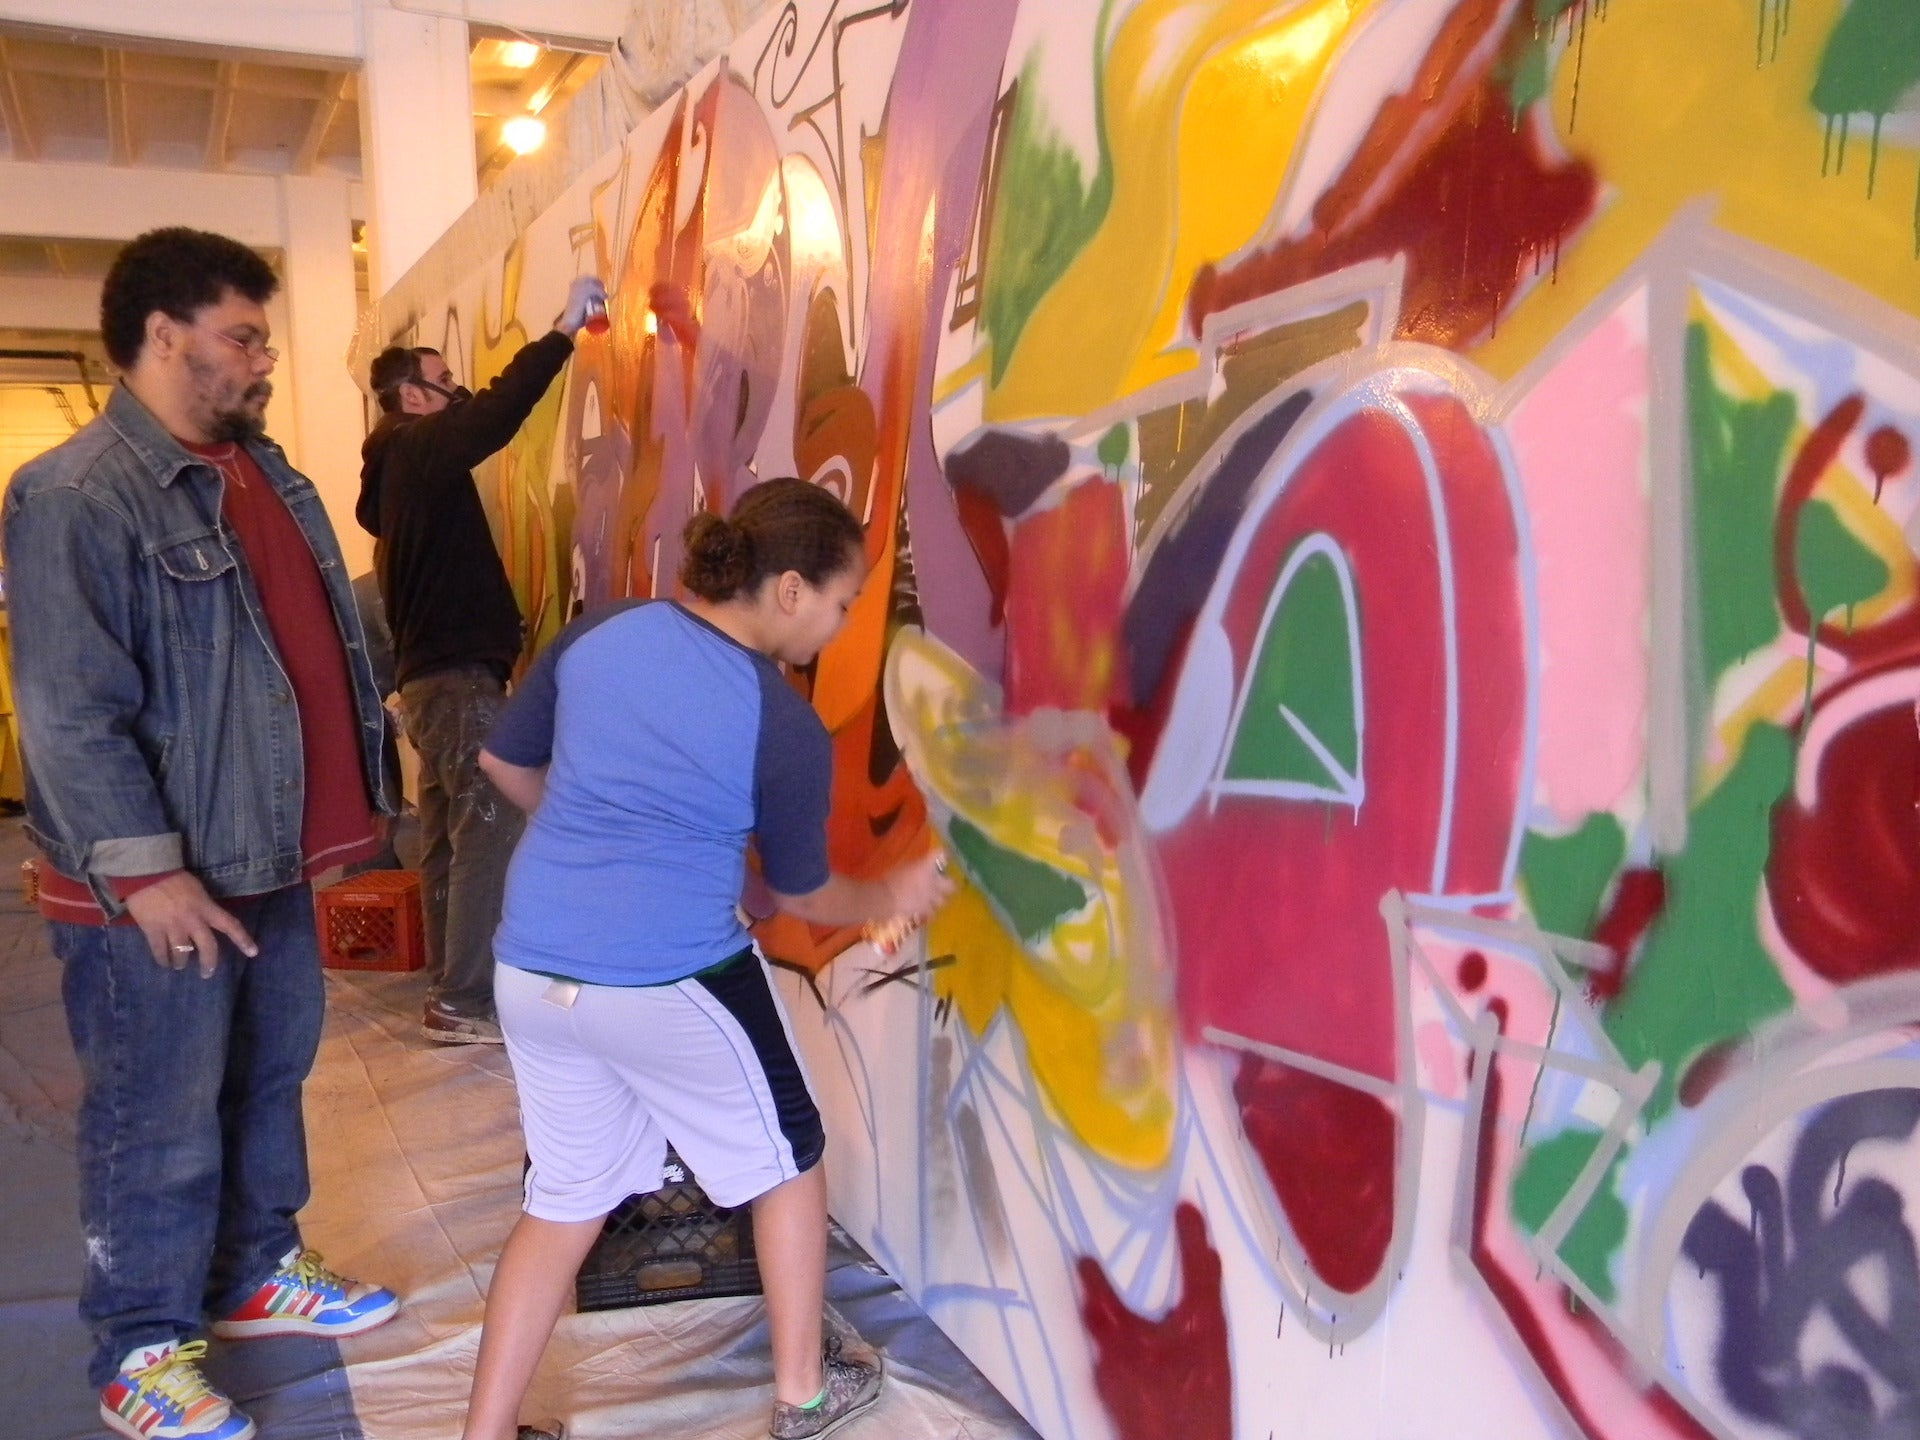 Malcolm Mobutu Smith and members of his Indianapolis community at work on a graffiti wall, 2011. Photo © Malcolm Mobutu Smith